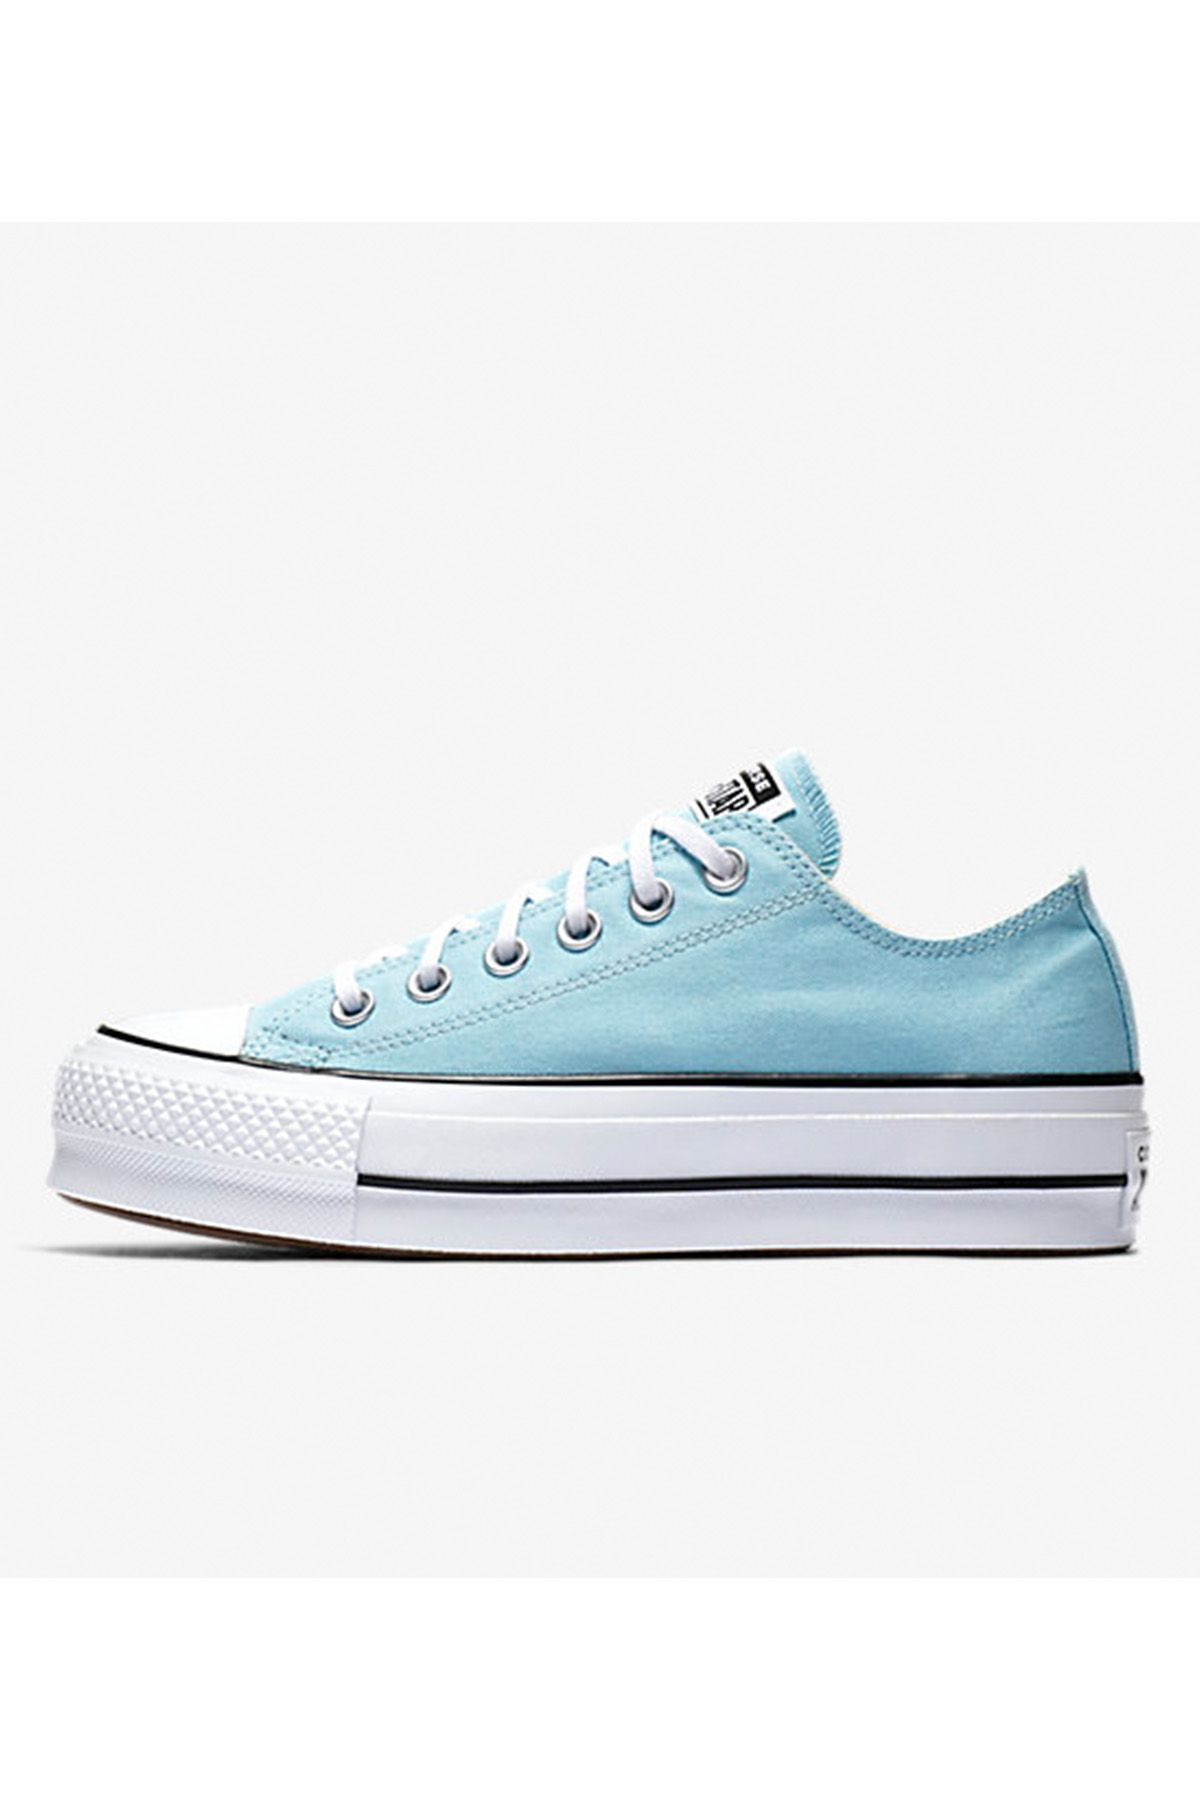 e35083a43a0c 20 Cute Sneakers for Fall 2018 - Trendy Shoes to Wear Back to School